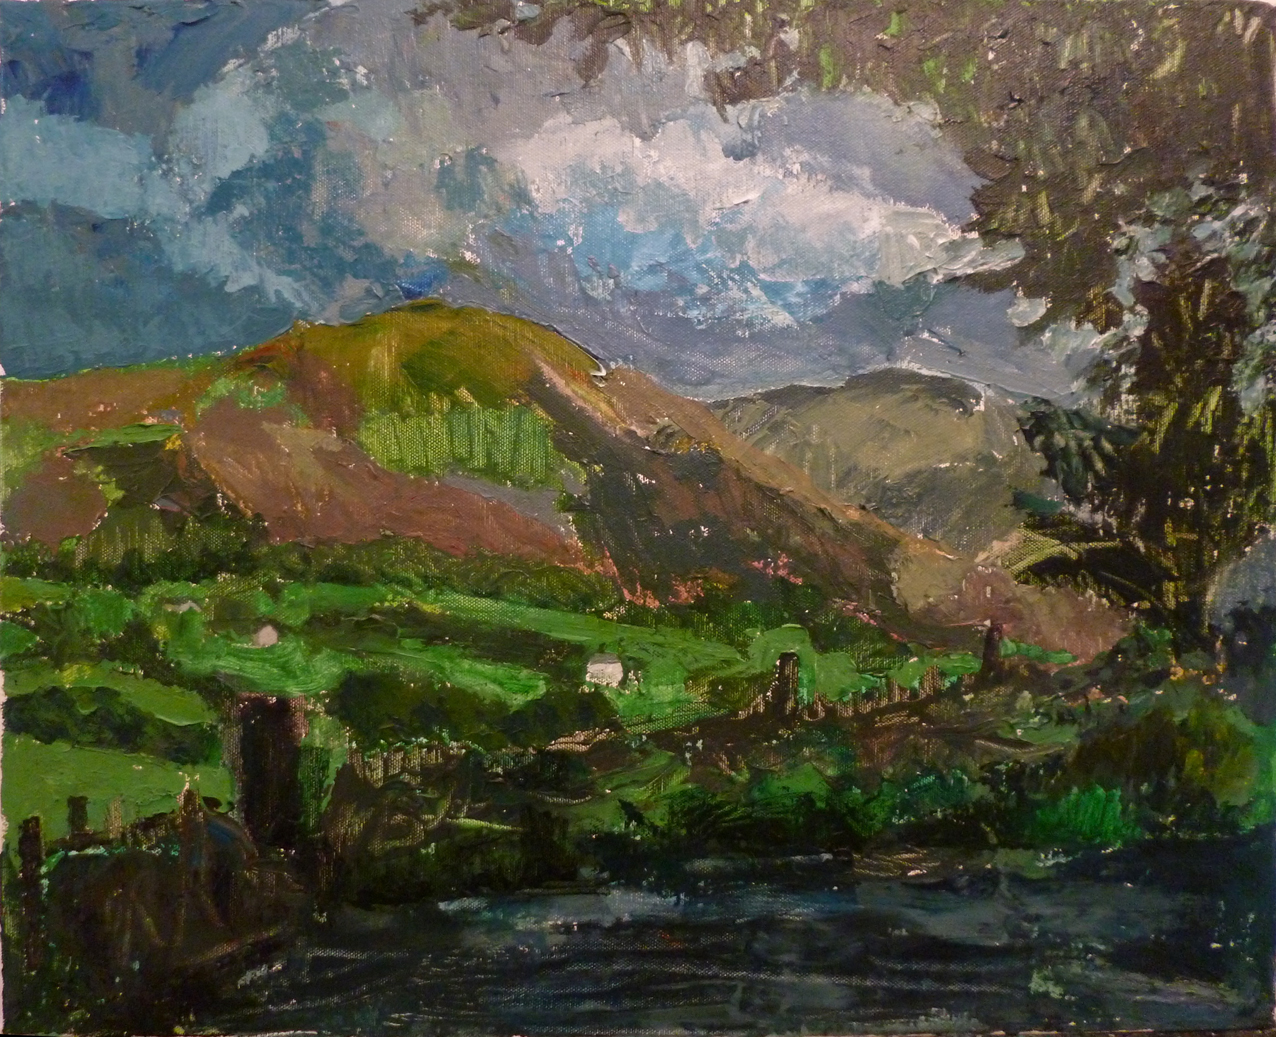 Lake District, 2016, acrylic on canvas, 20 x 16 in